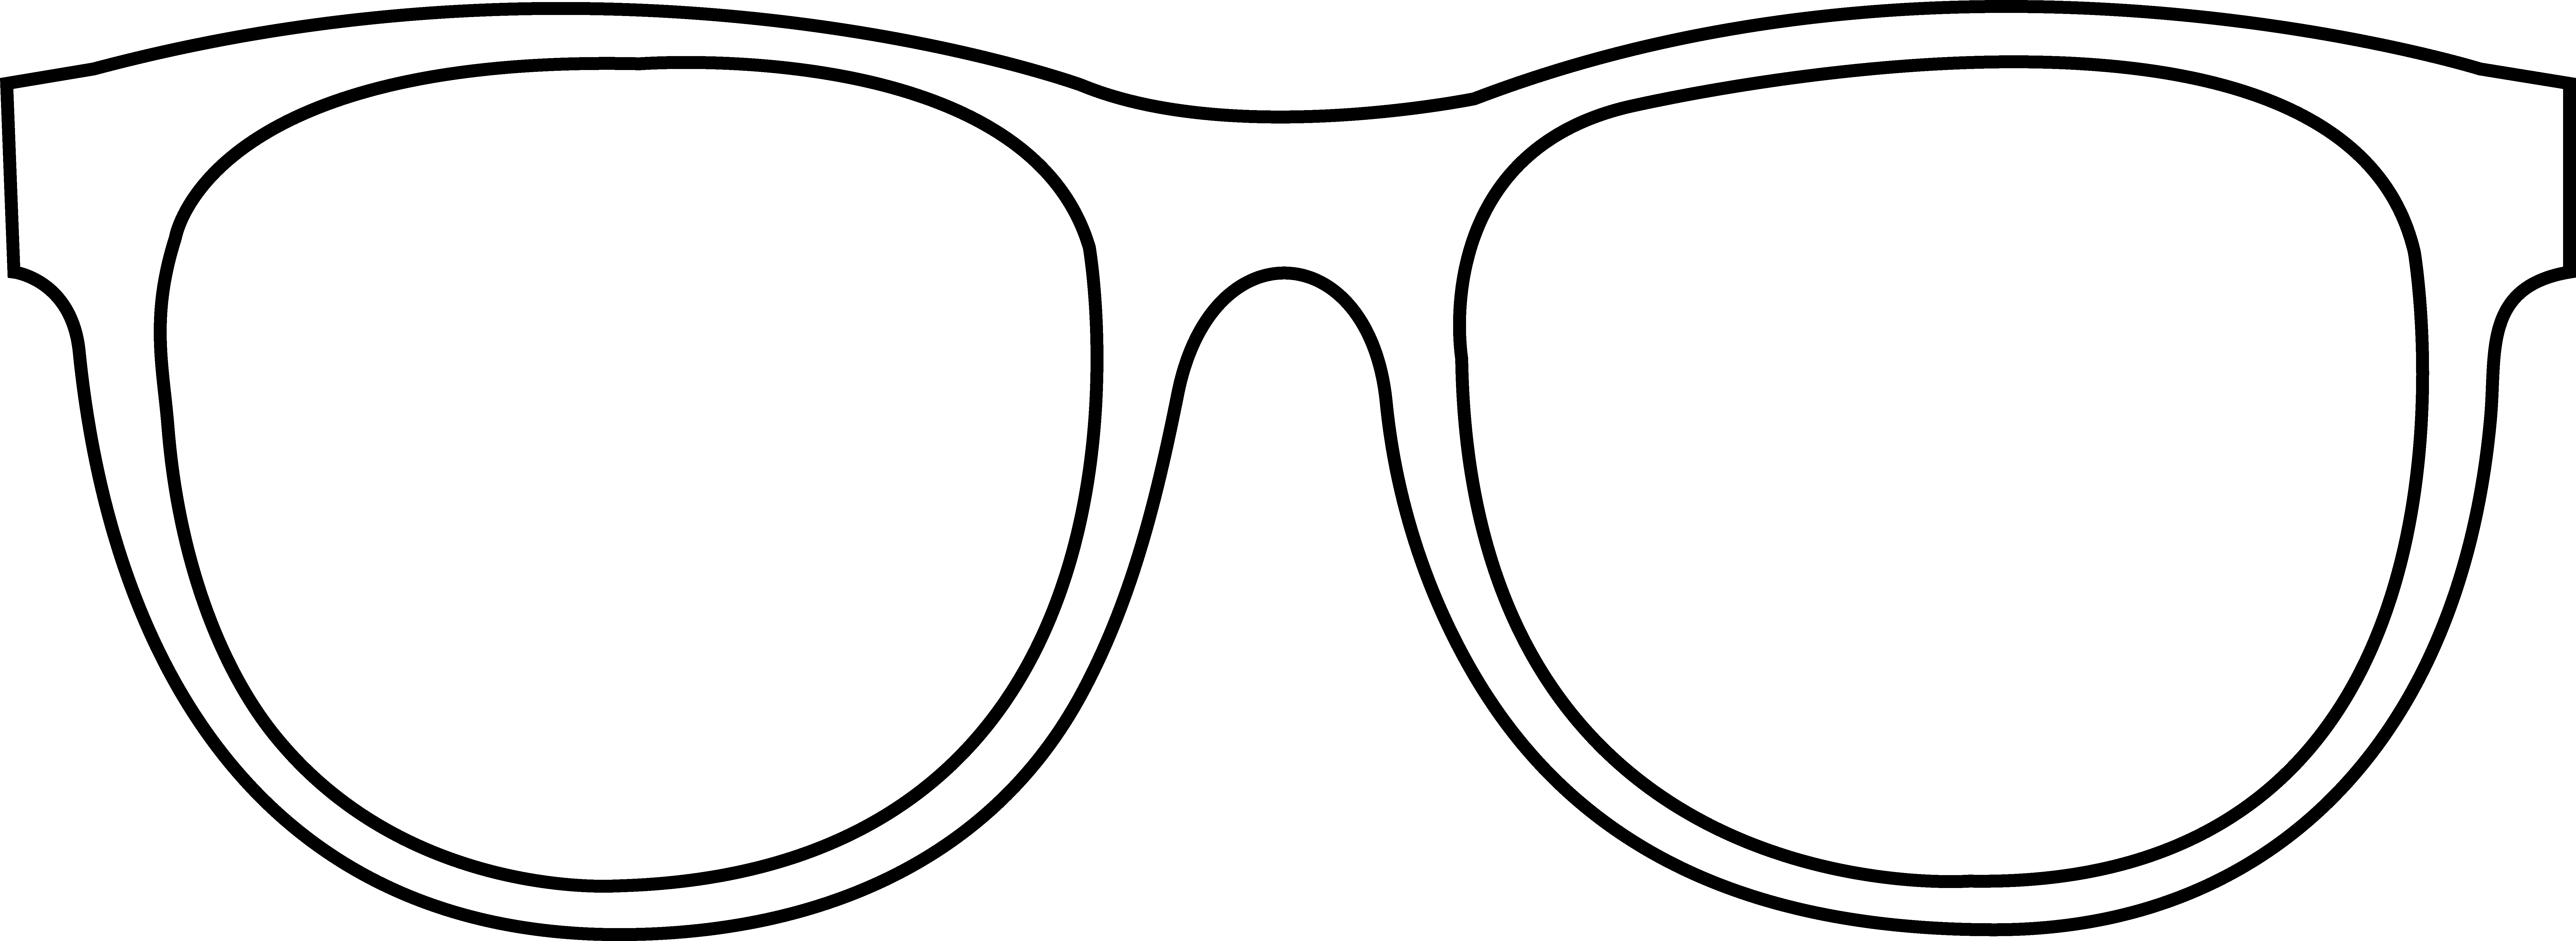 Nerd Glasses Clipart